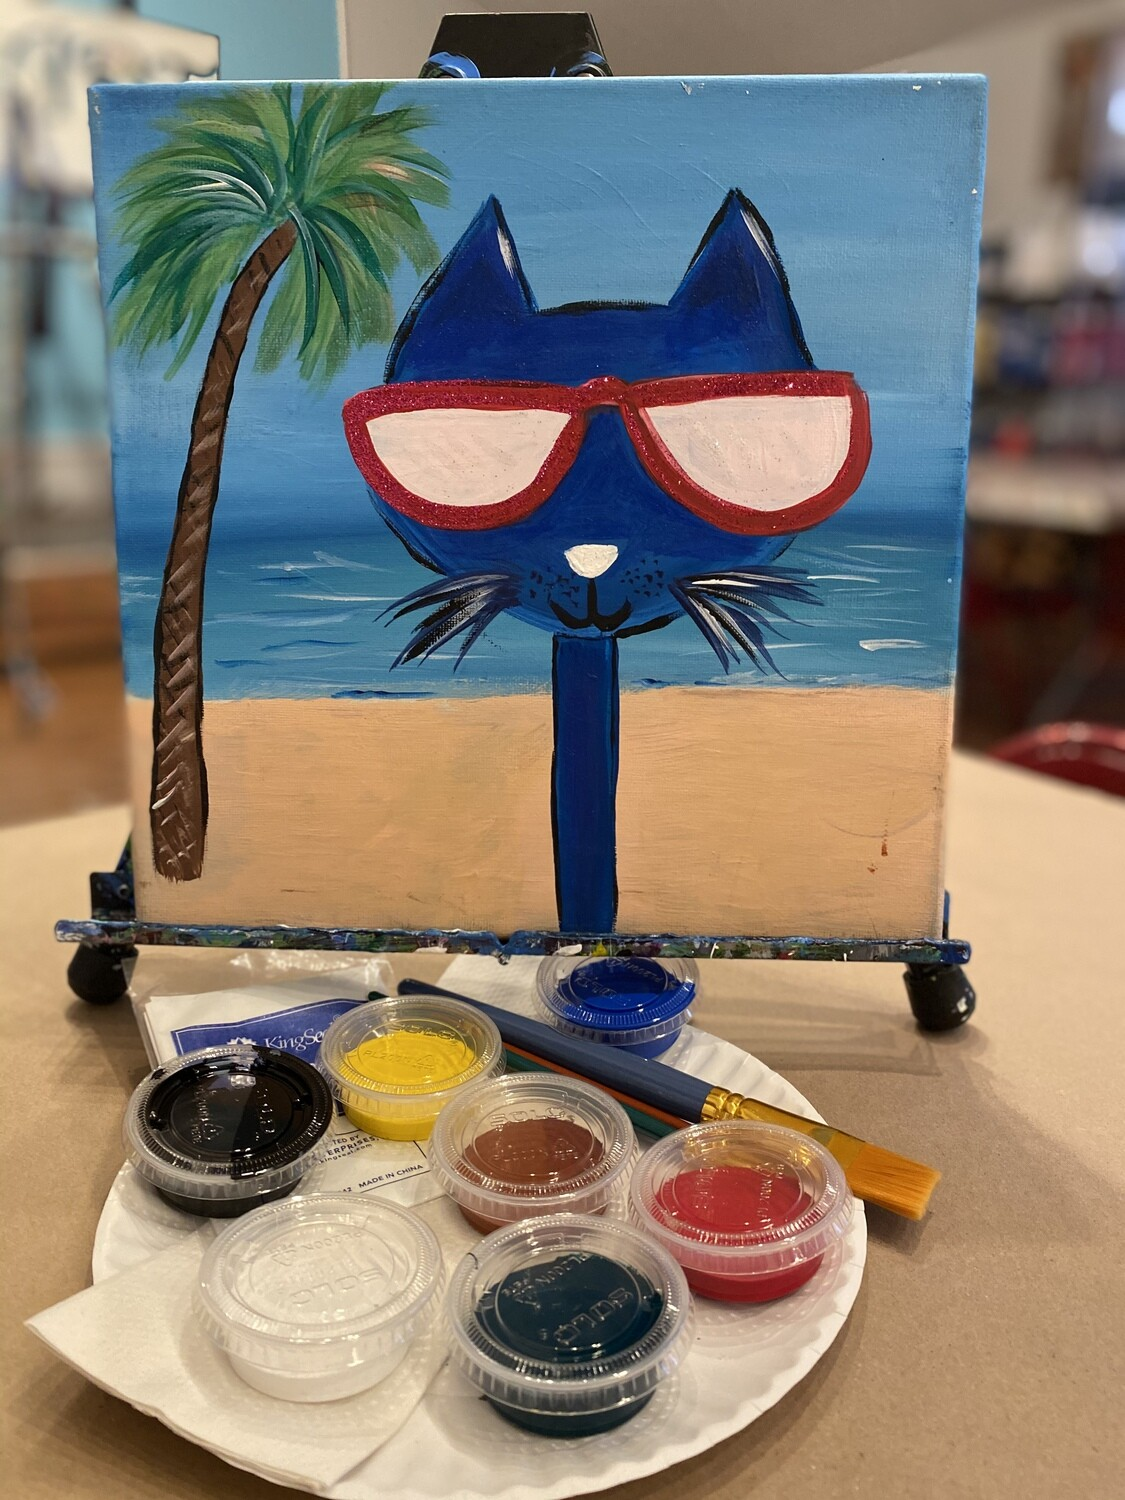 Kool Kat - At Home Art Kit 12x12